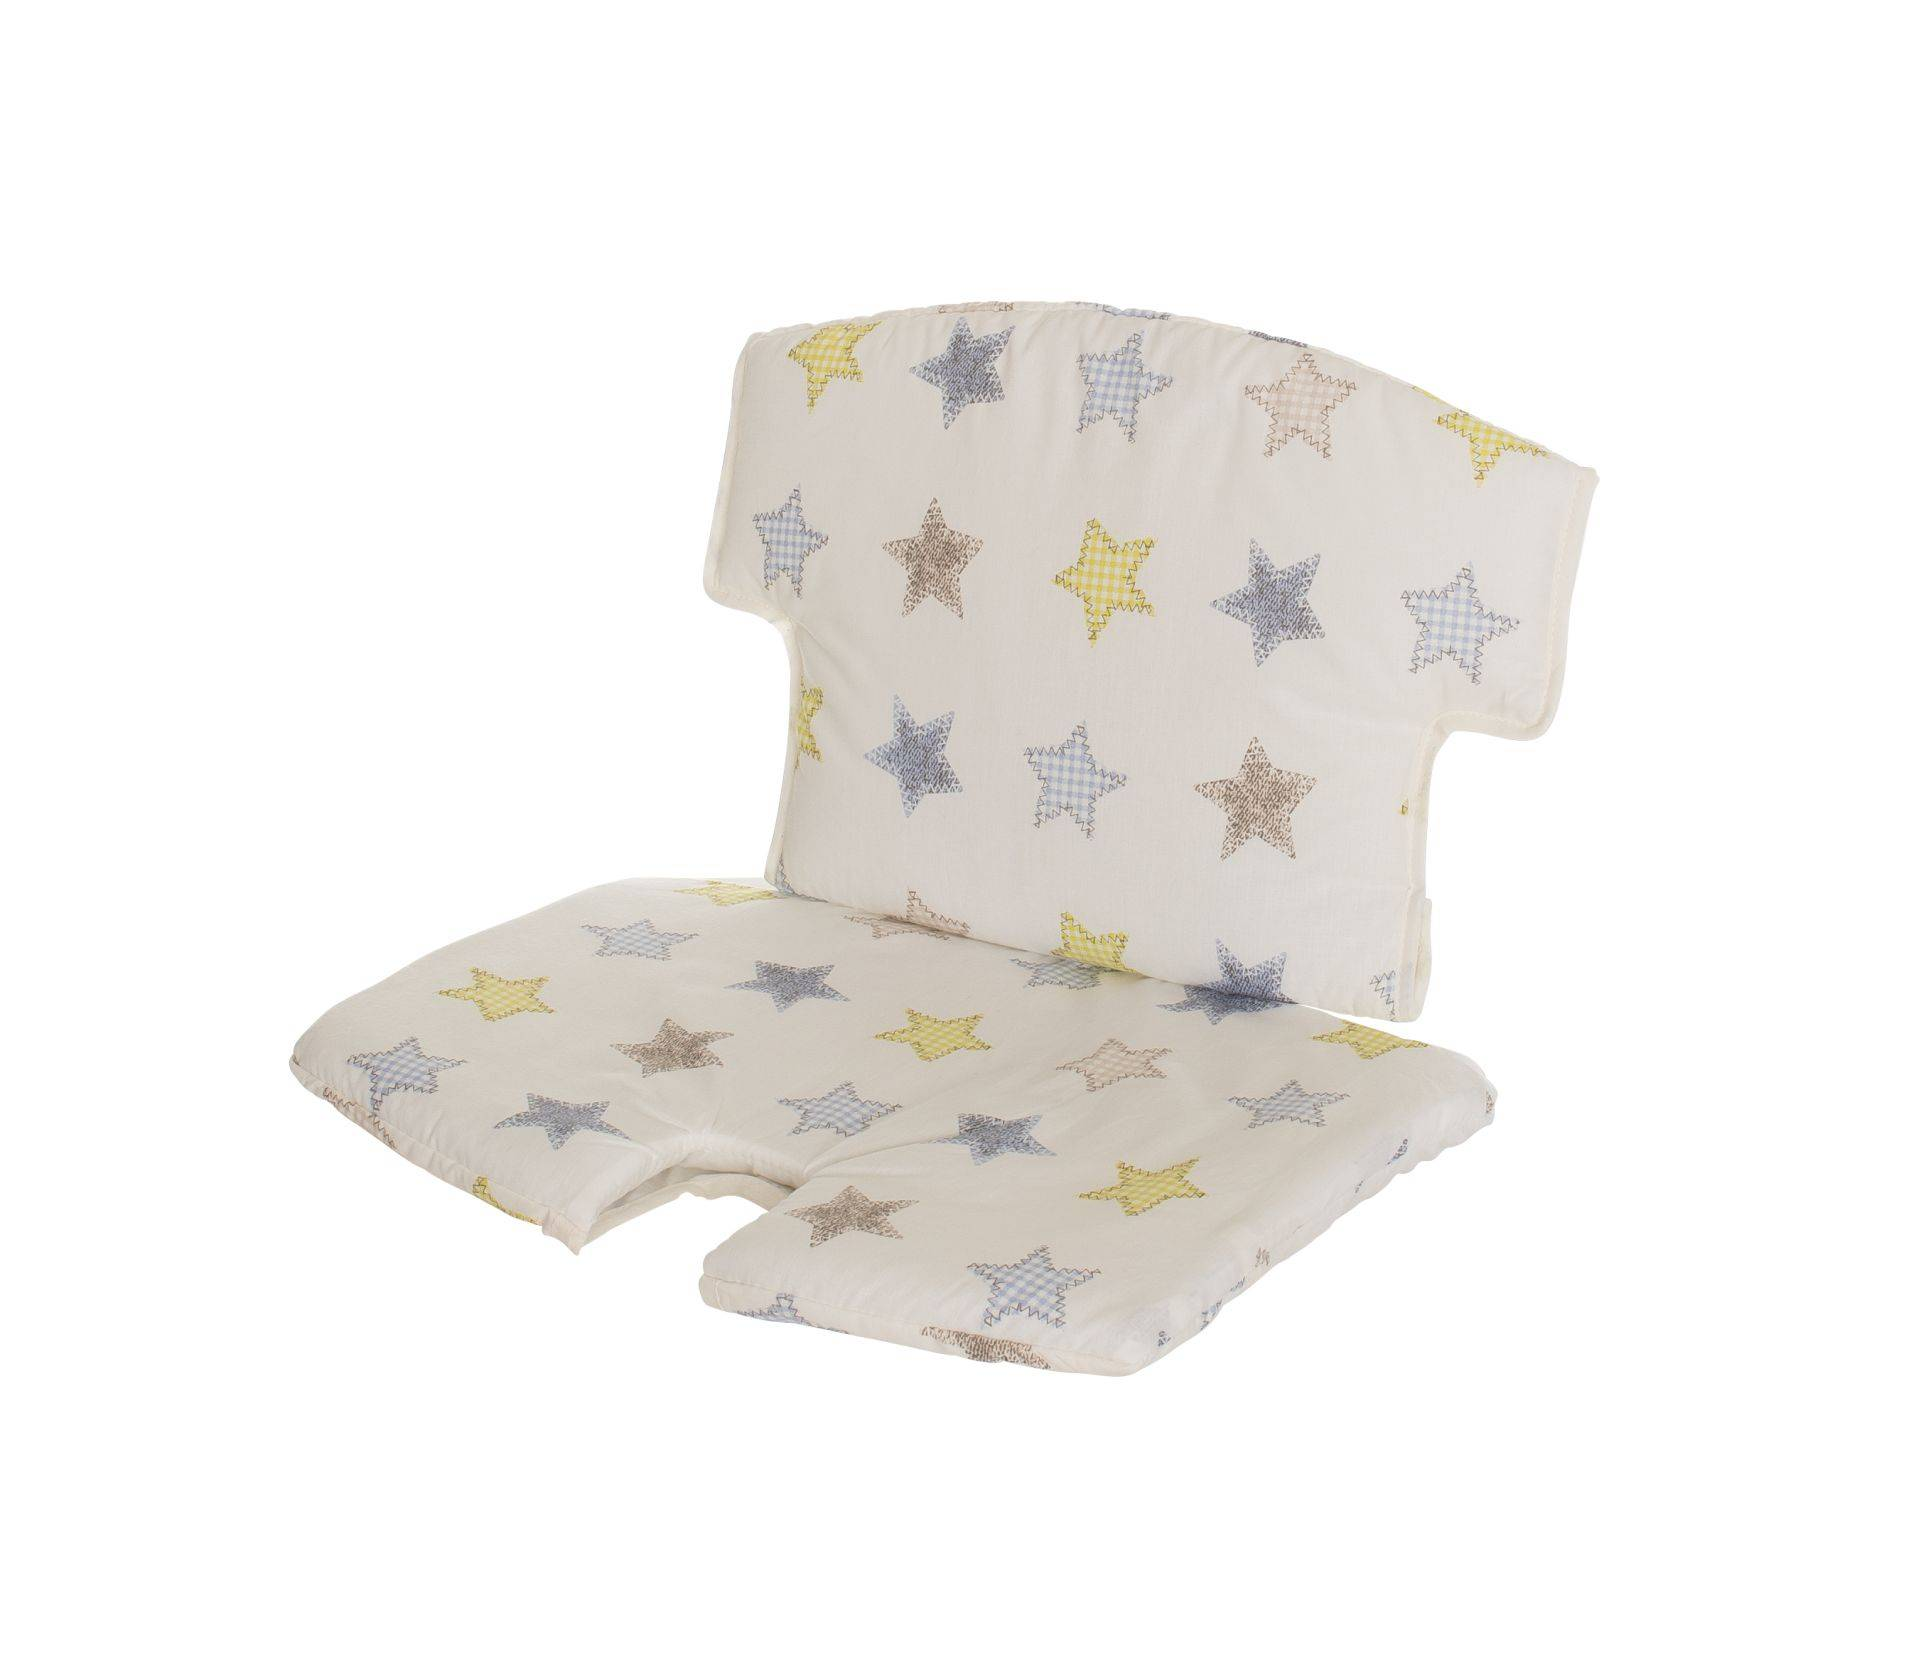 Geuther Chair insert for Syt highchair;